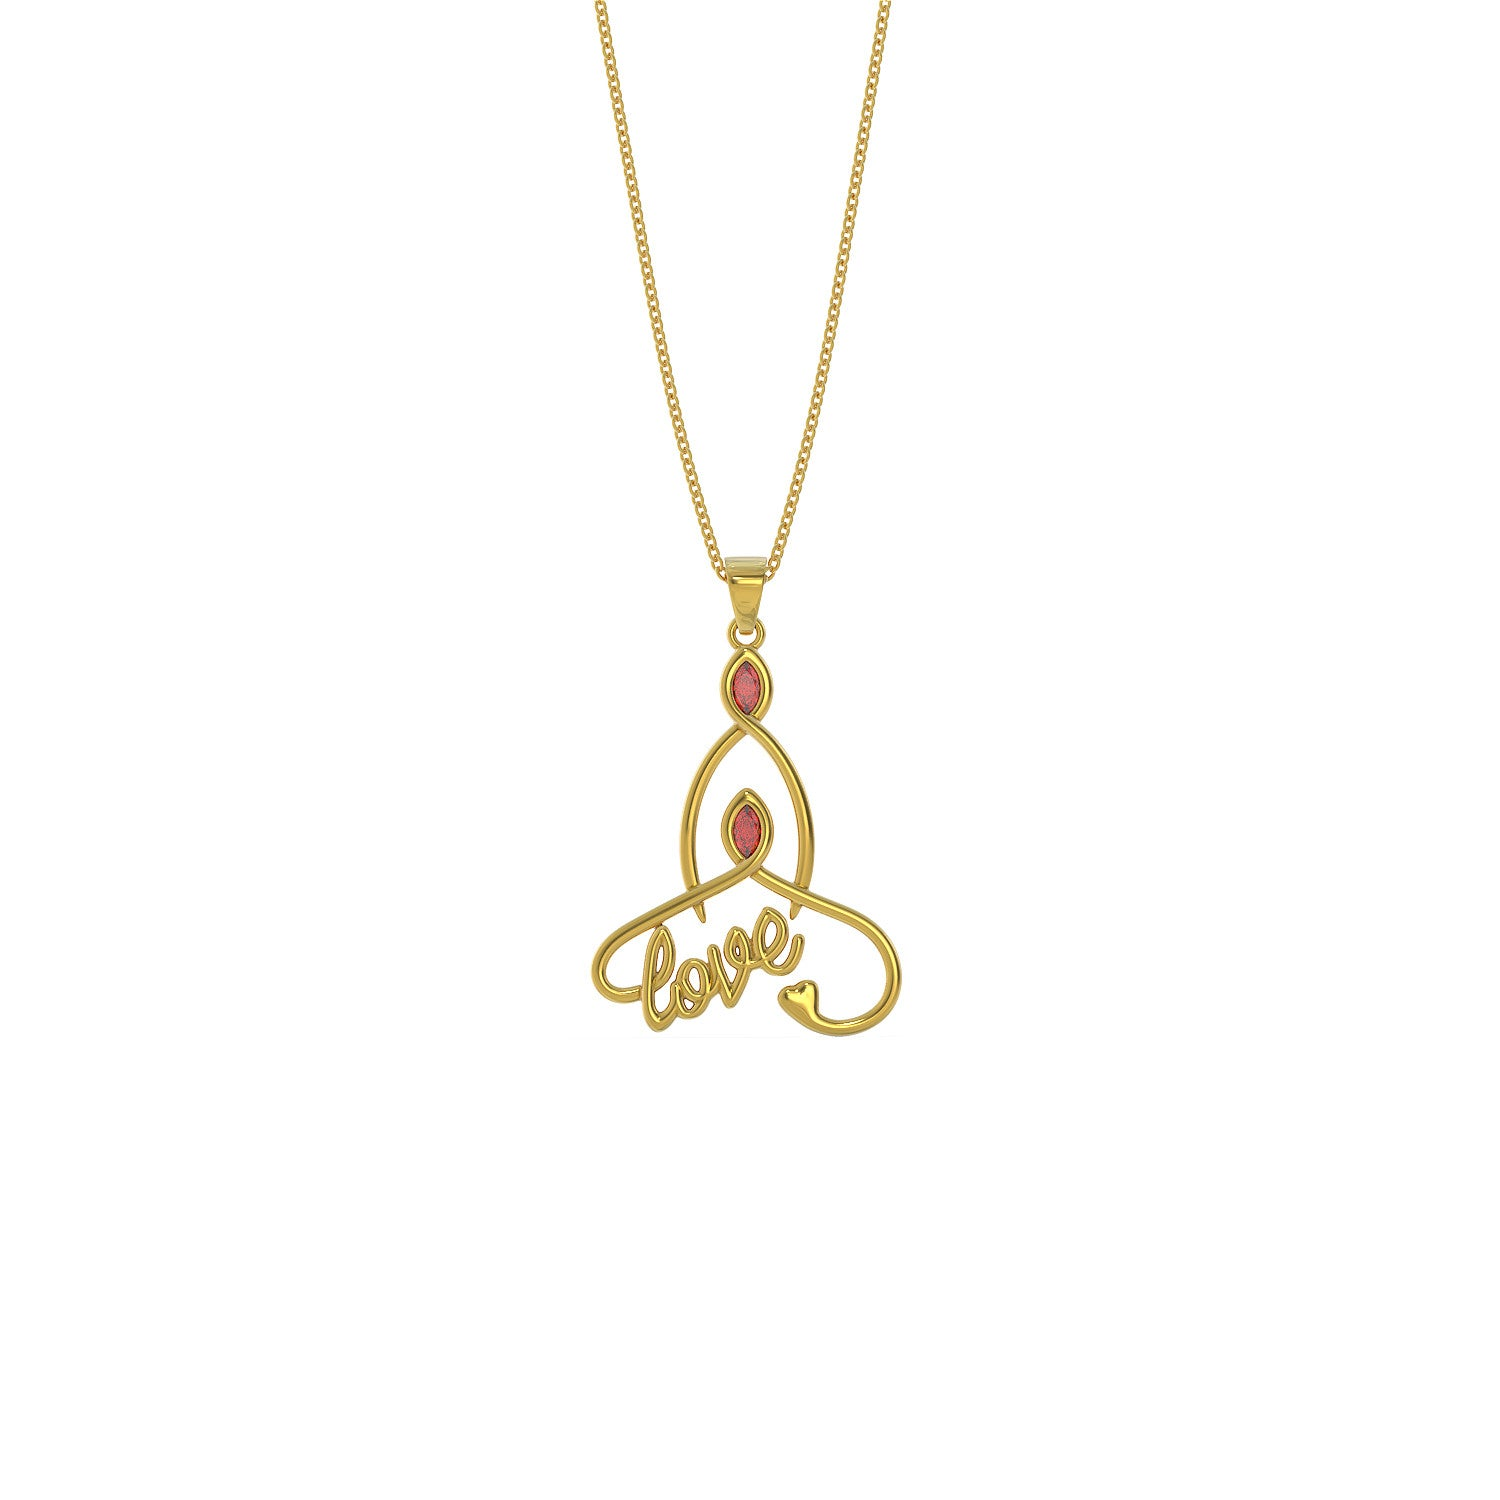 A Childs Love Pendant Necklace